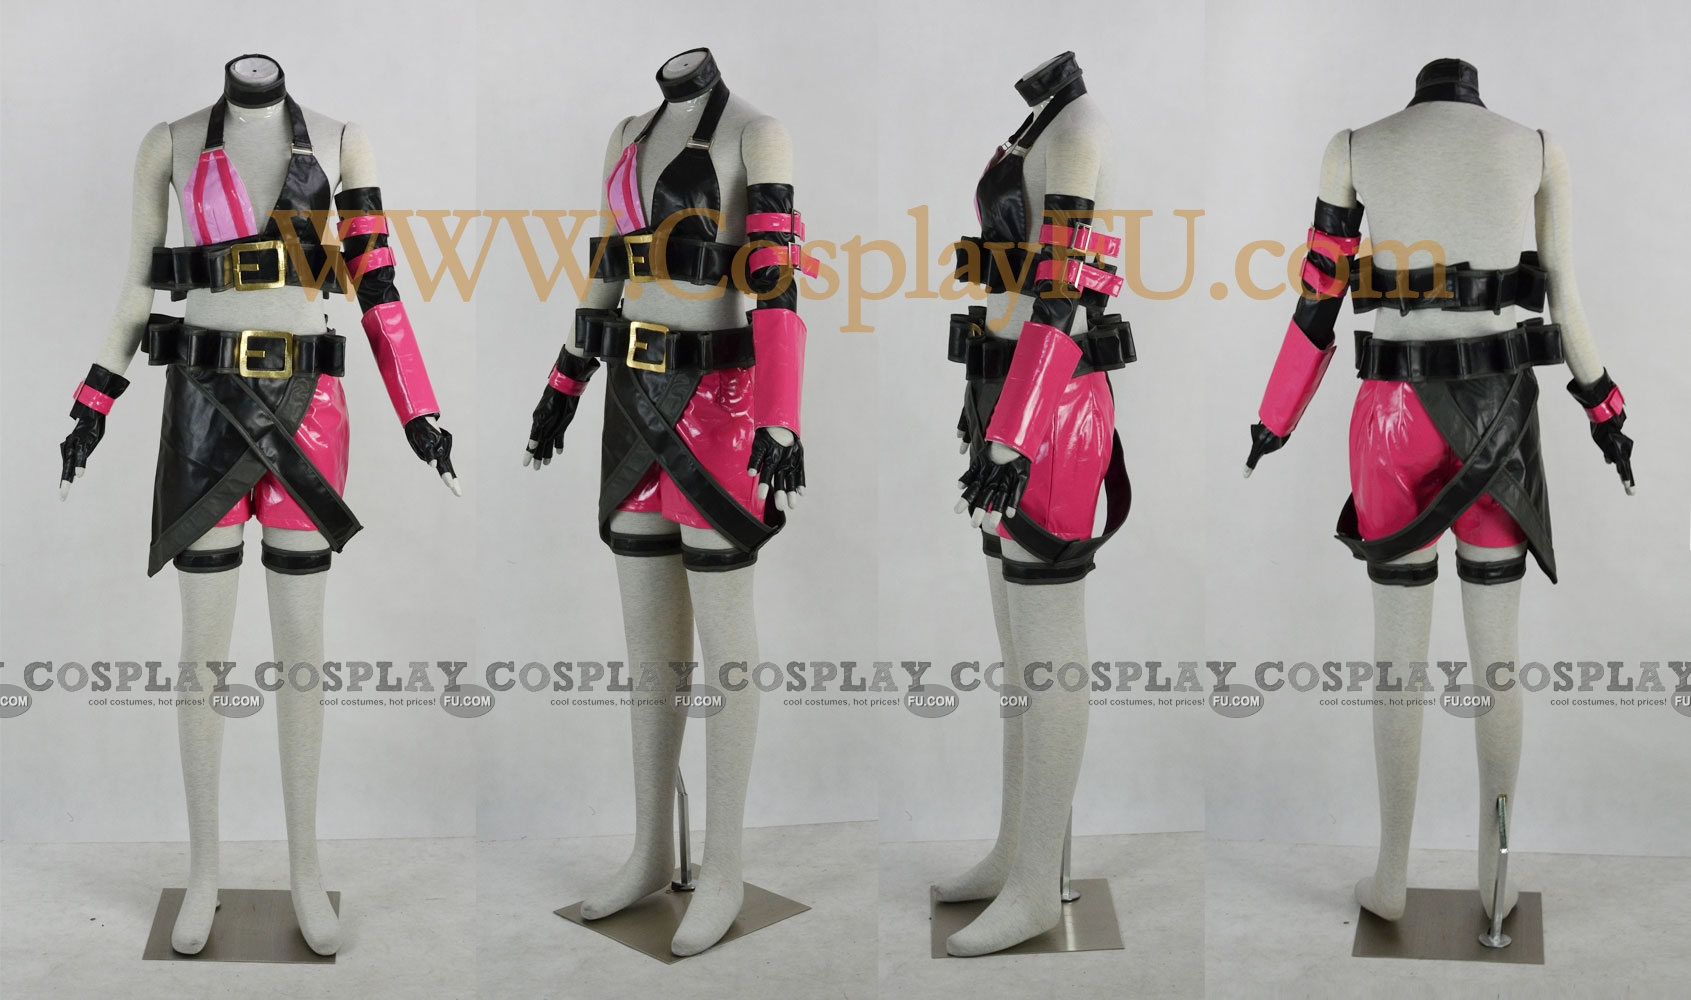 Jinx Cosplay Costume from League of Legends